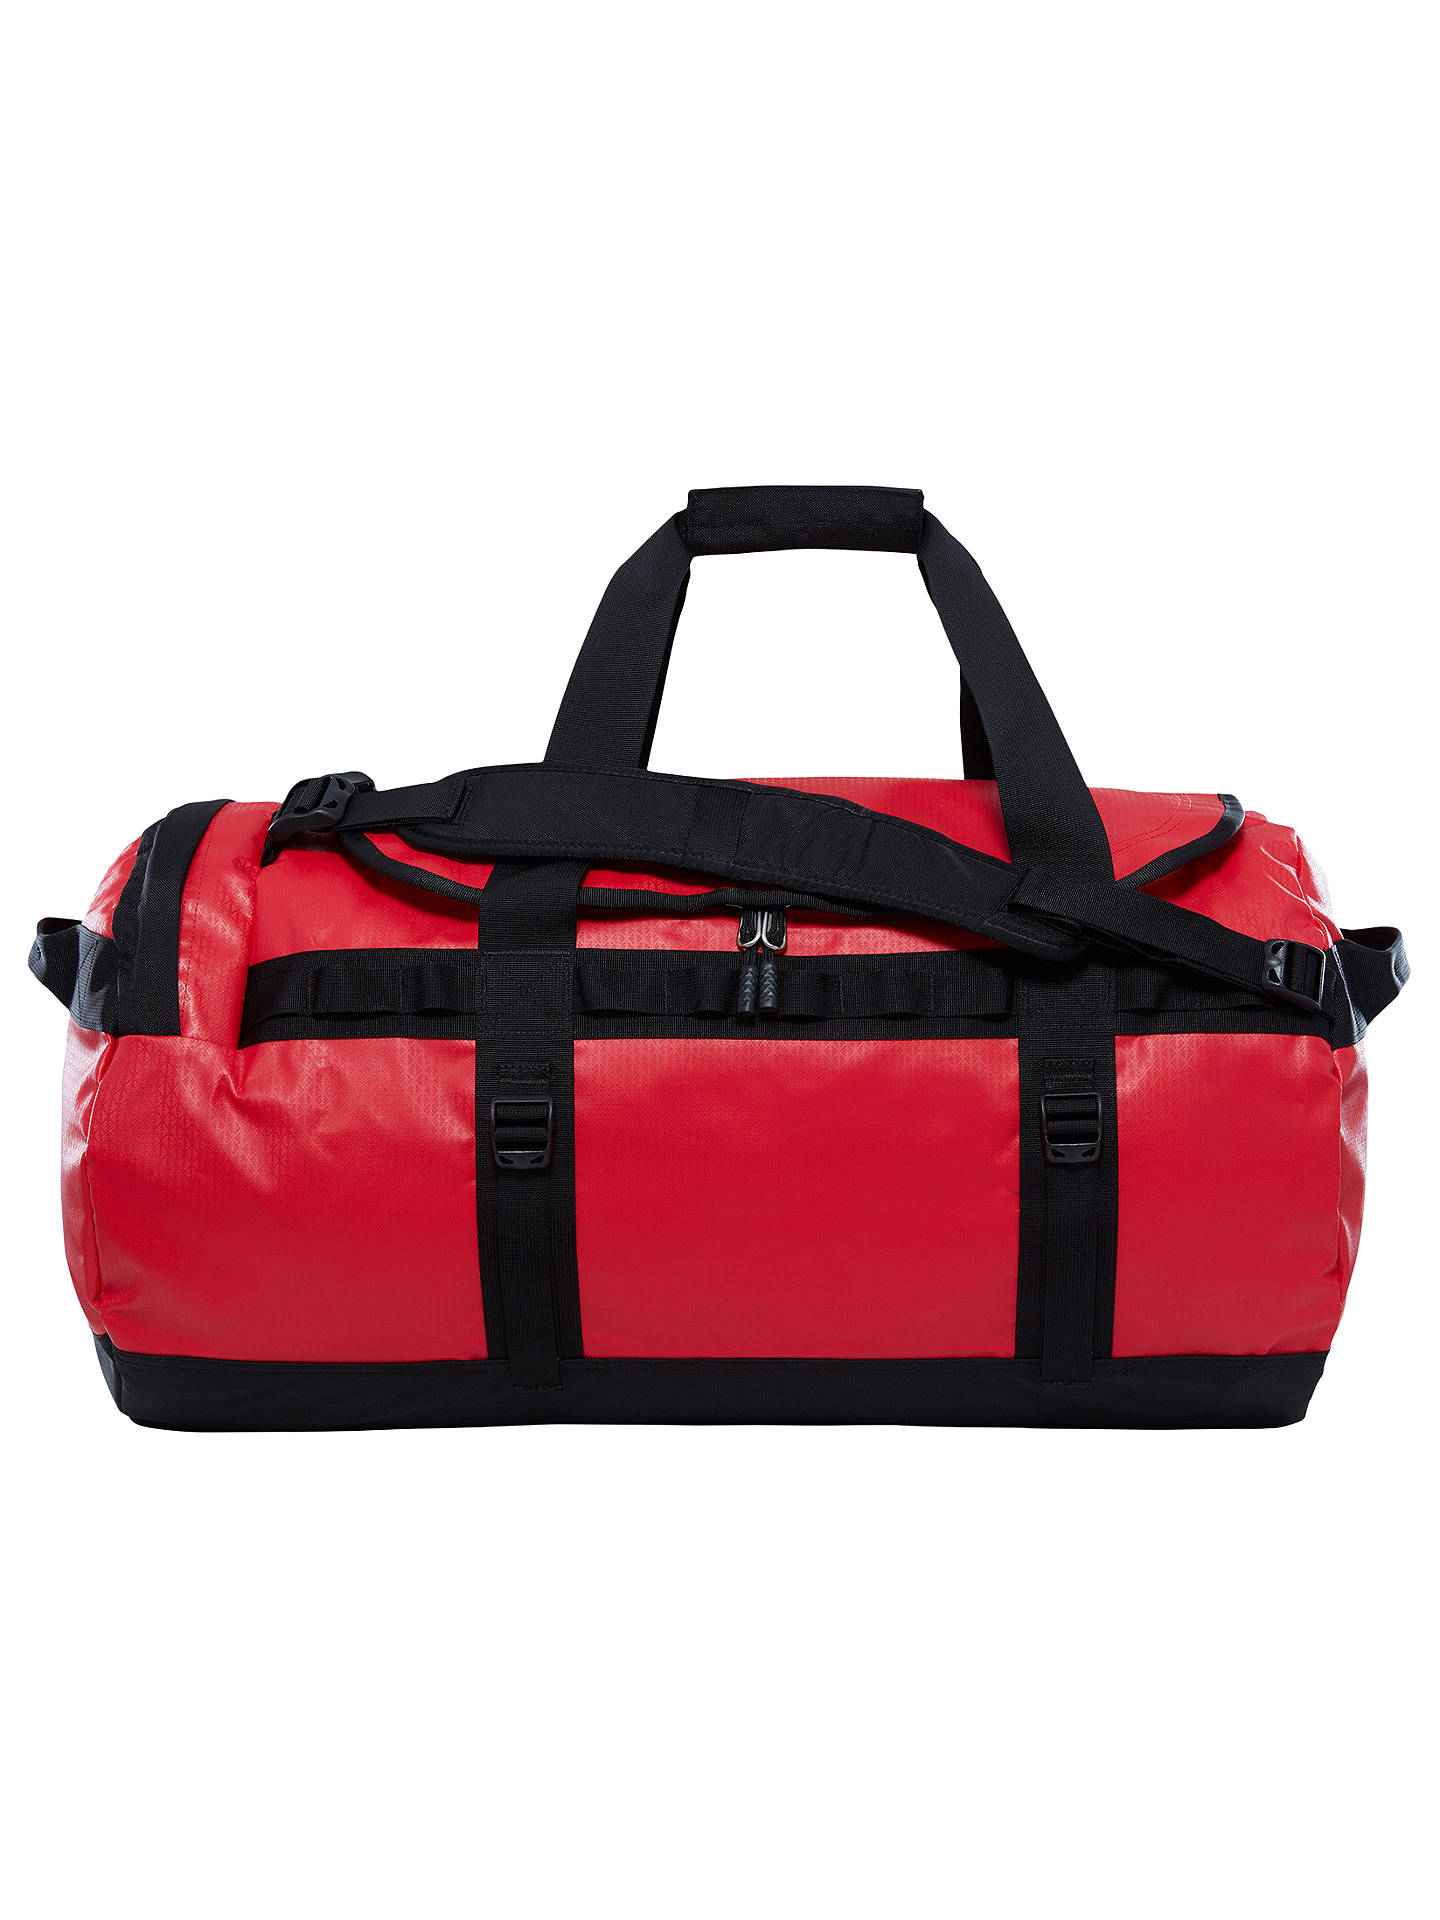 BuyThe North Face Base Camp Duffle Bag 9334e27122c1c